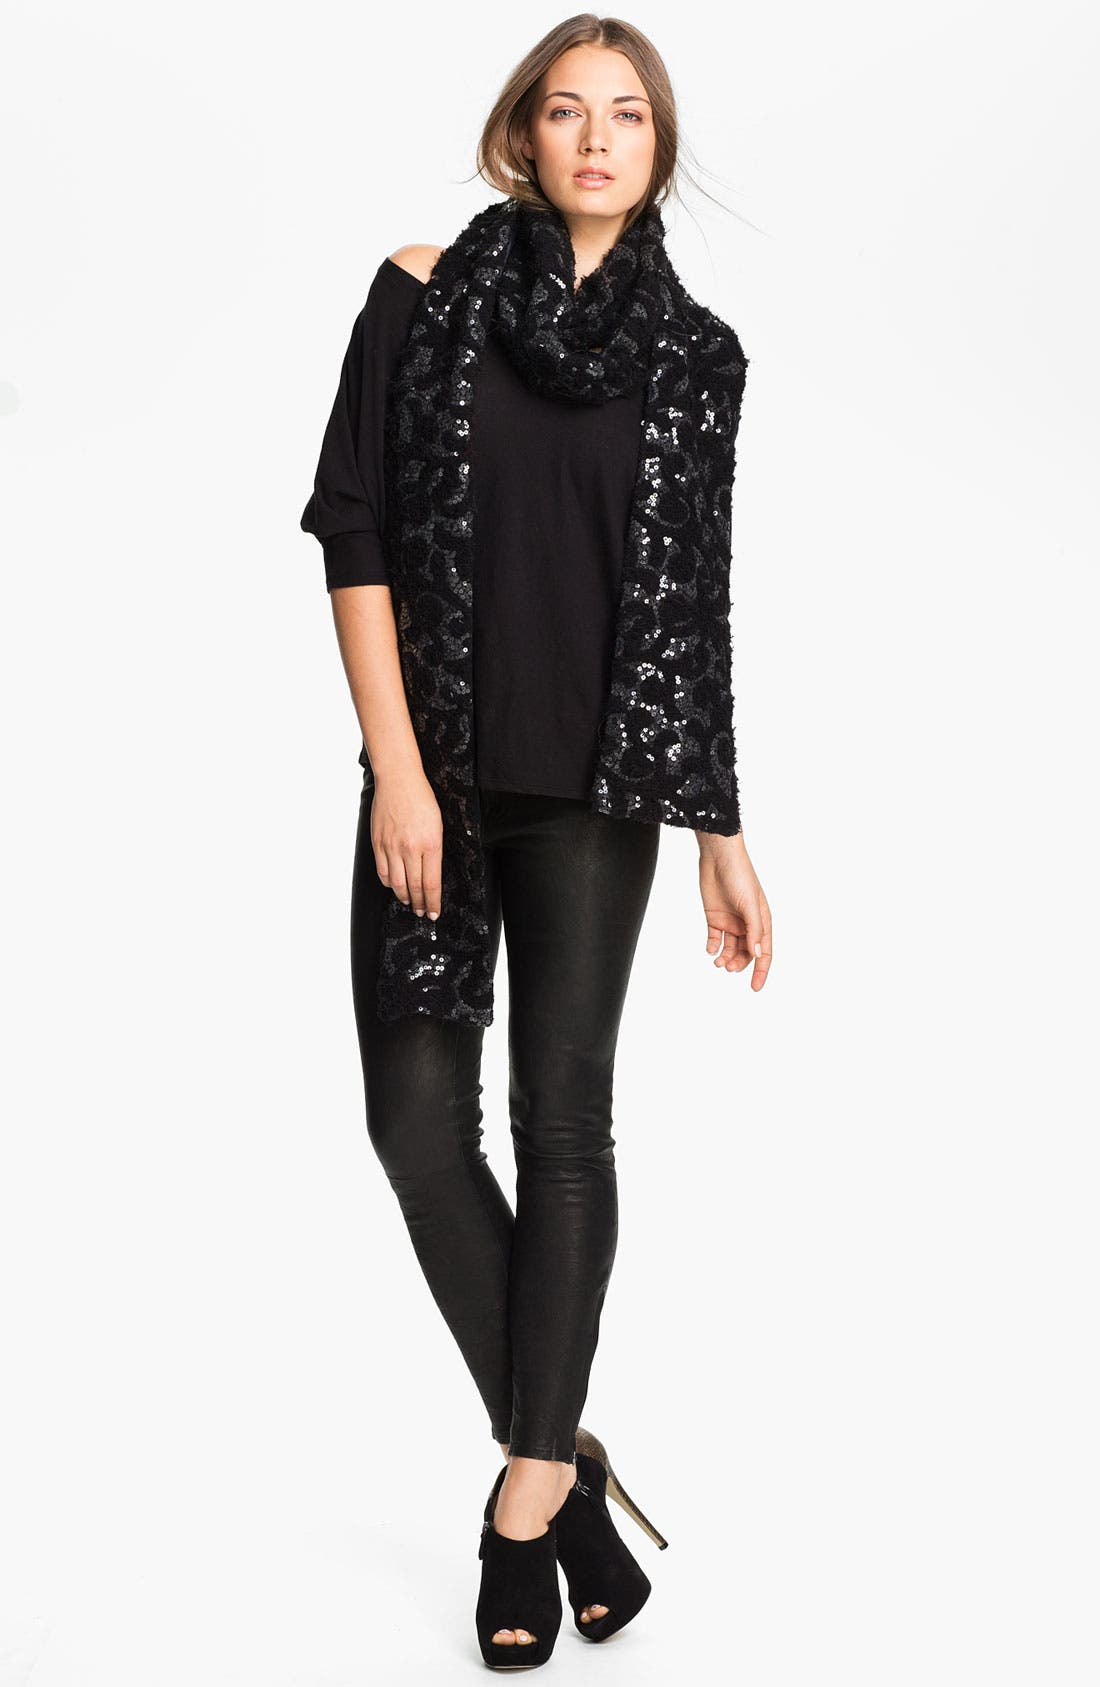 Alternate Image 1 Selected - Rachel Zoe Stretch Sequin Scarf